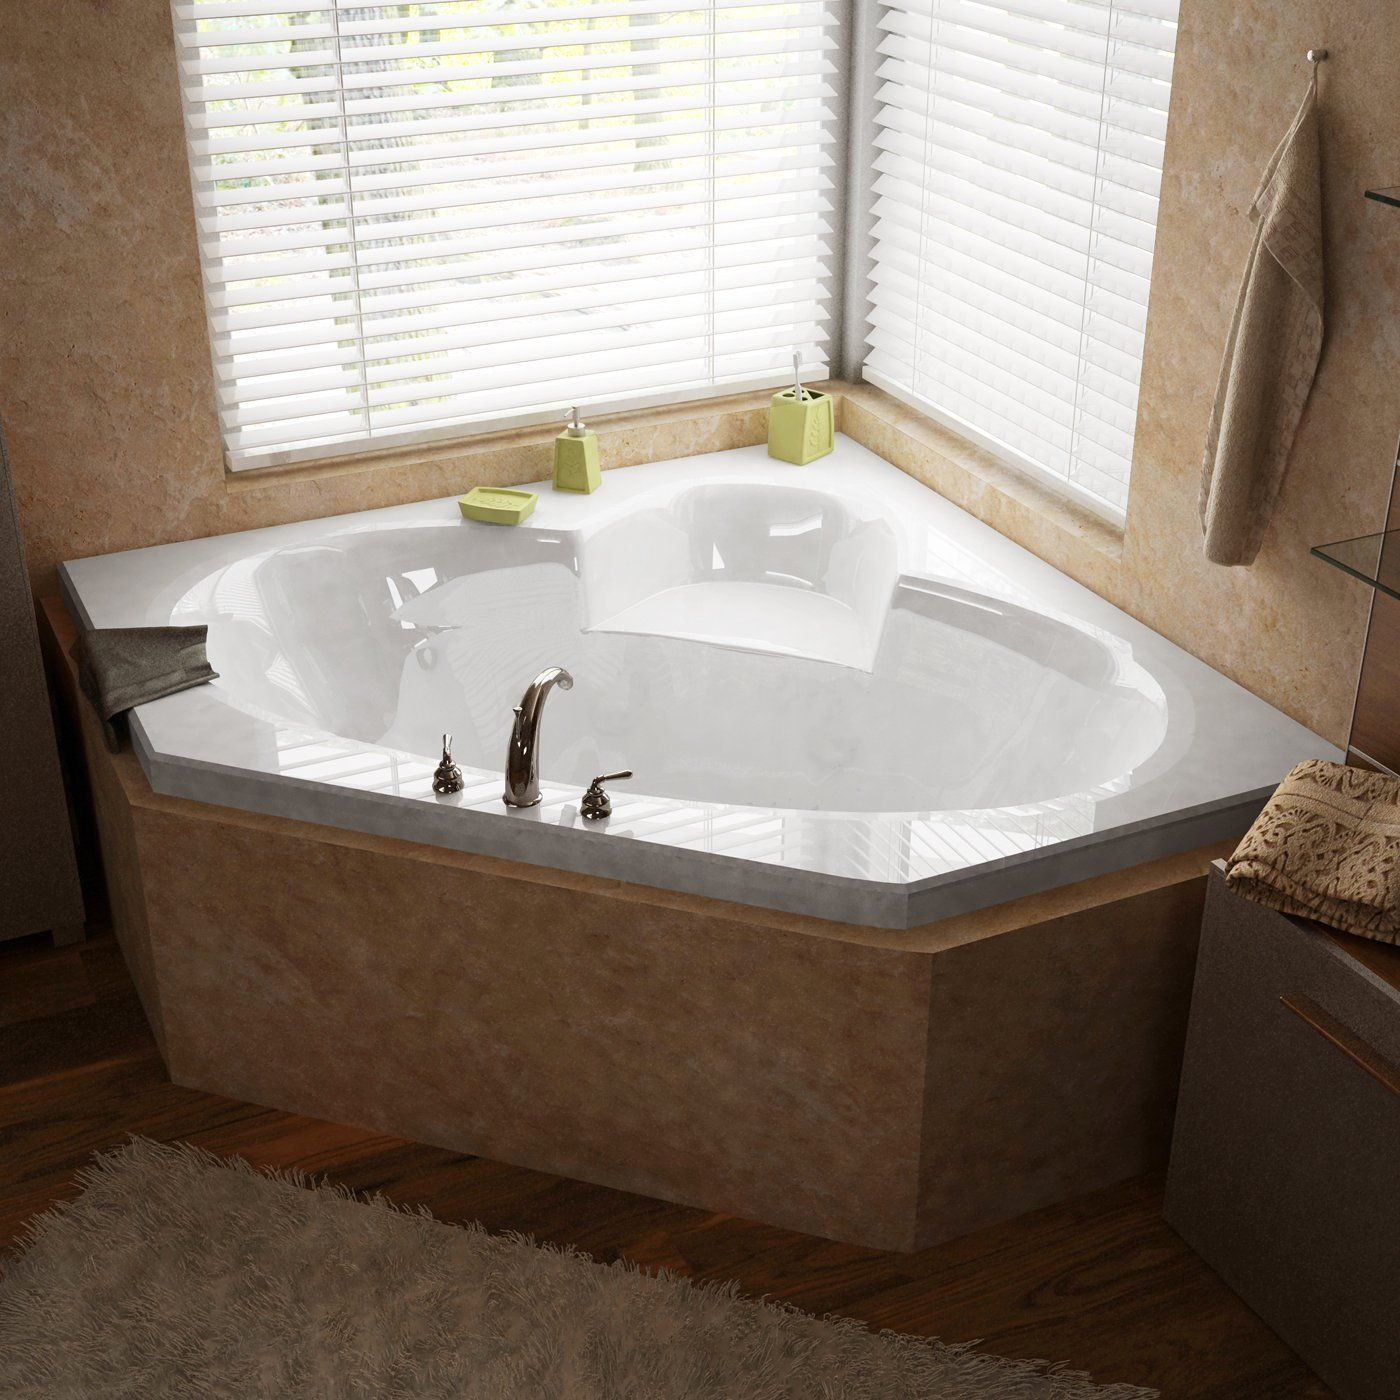 Shop Atlantis 6060S Sublime Corner Soaking Bathtub at ATG Stores ...